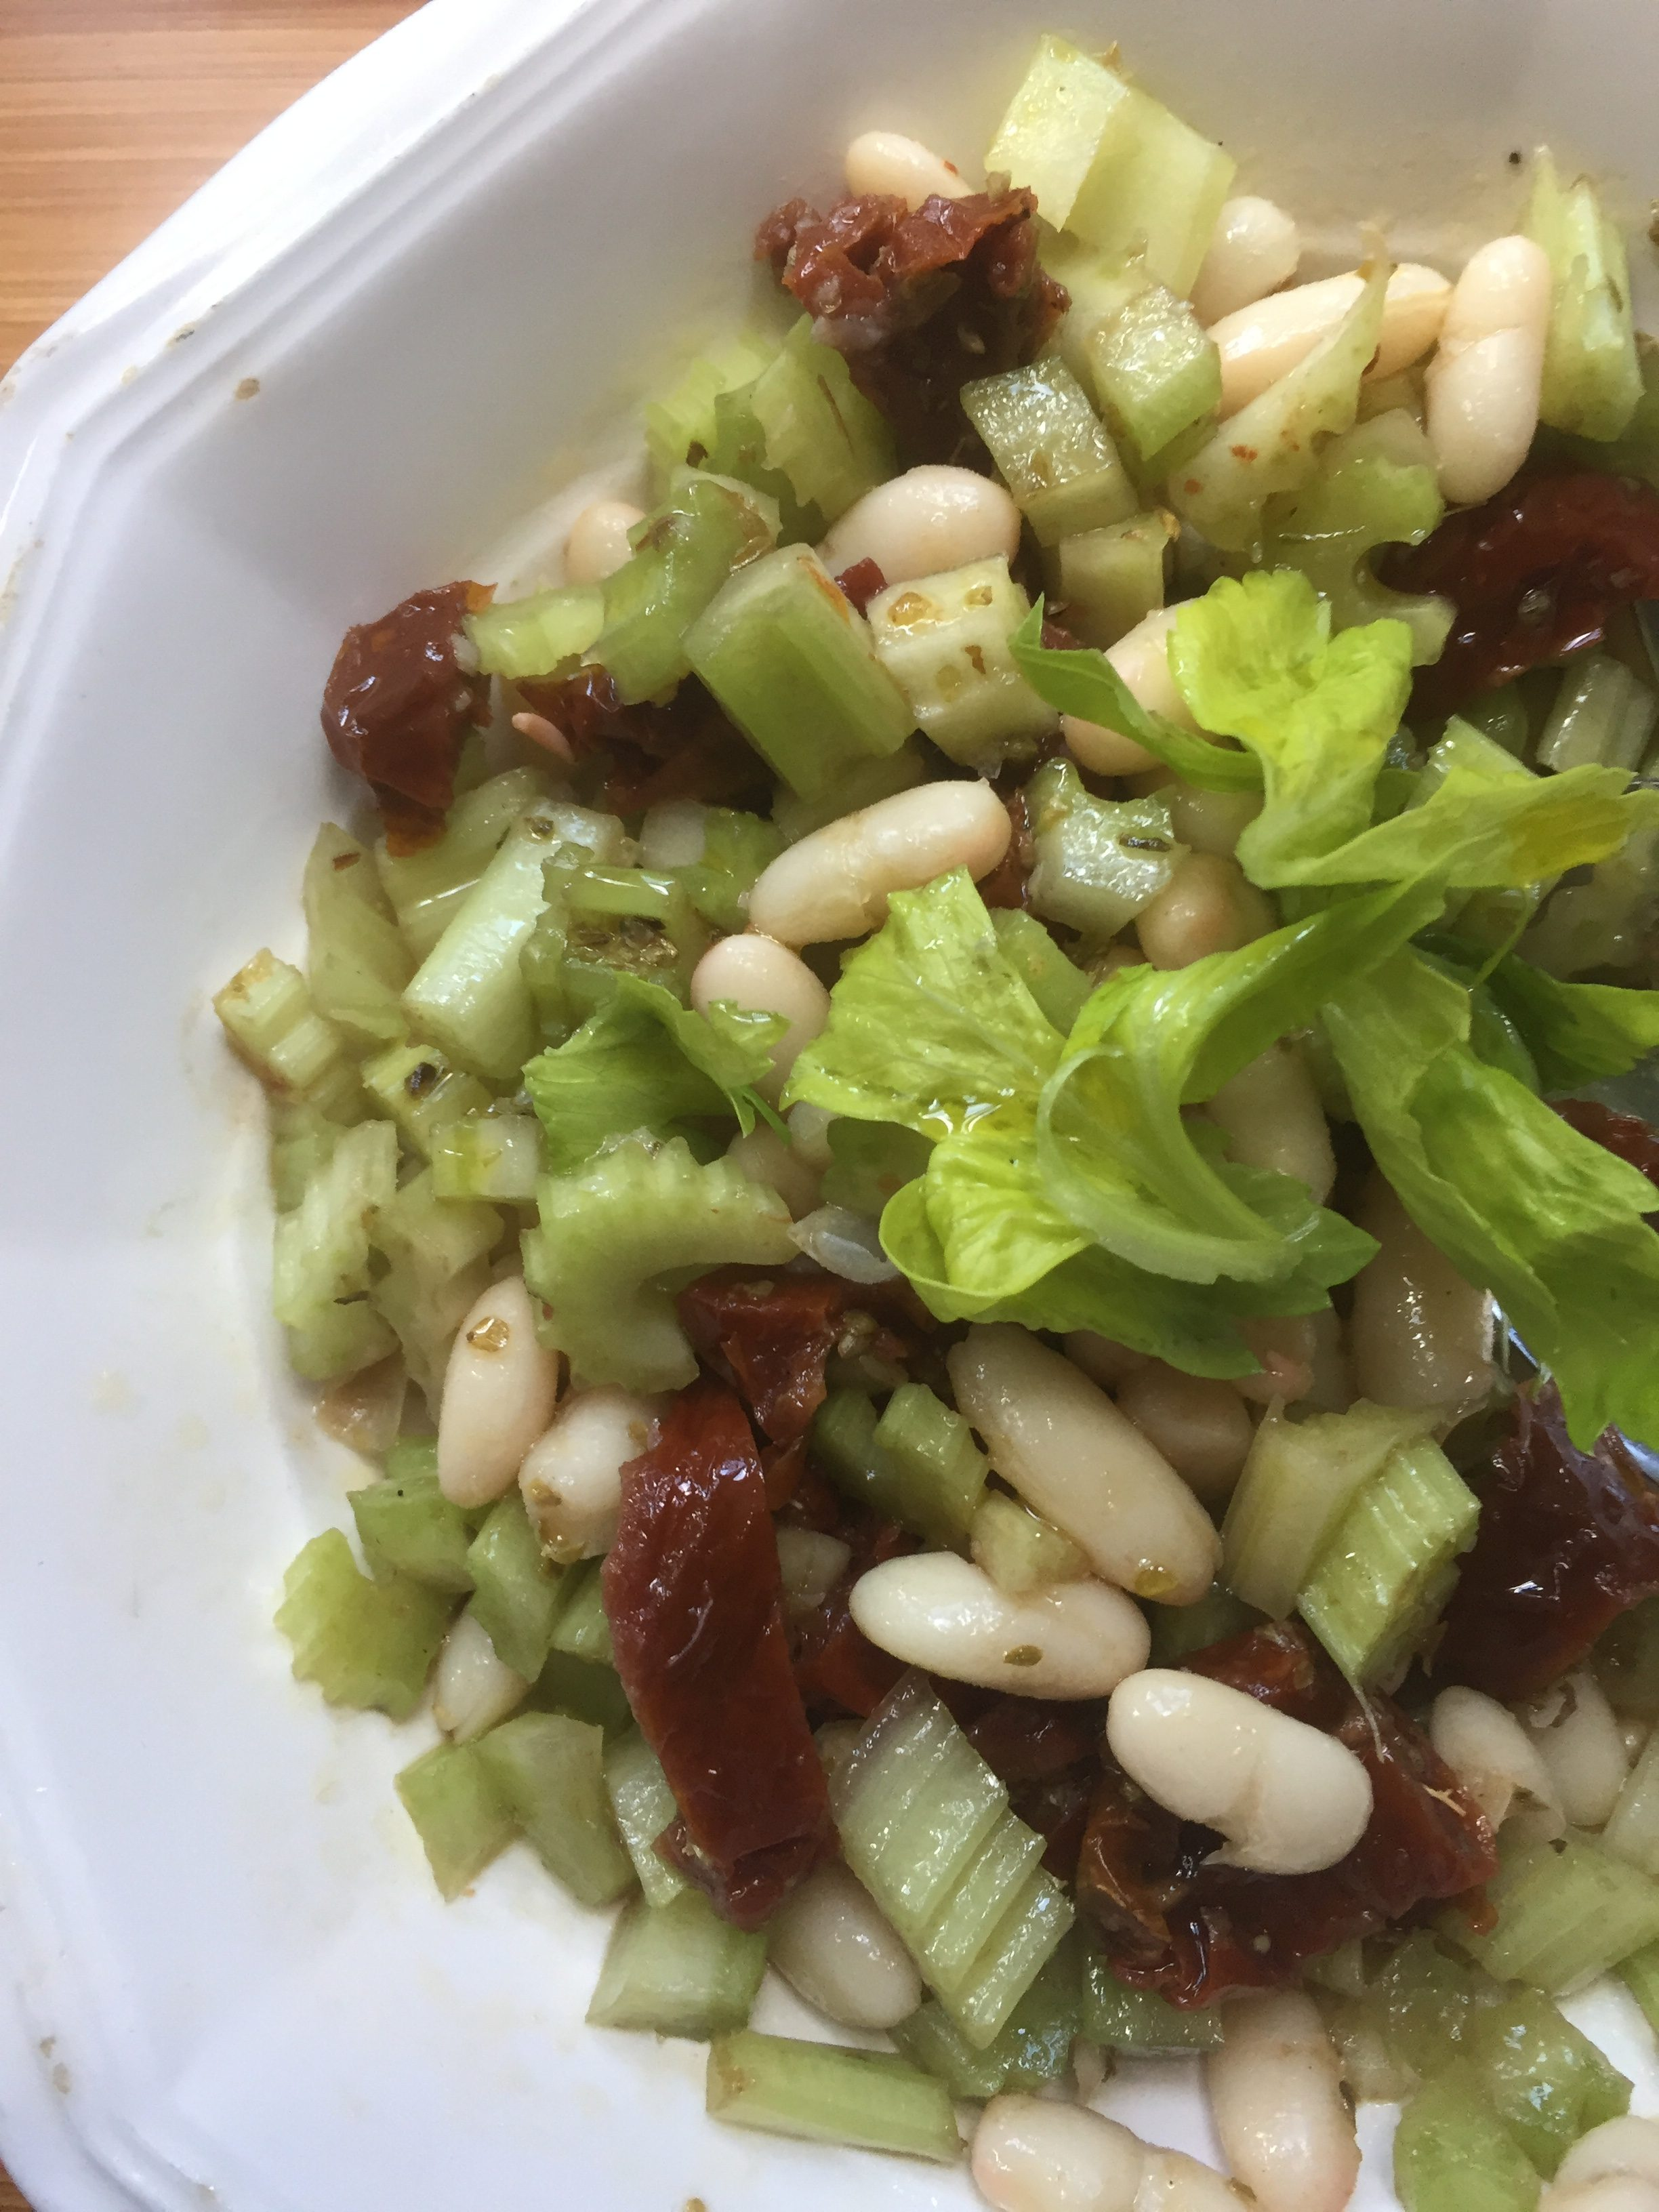 Sundried Tomatoes Celery And White Beans Salad The